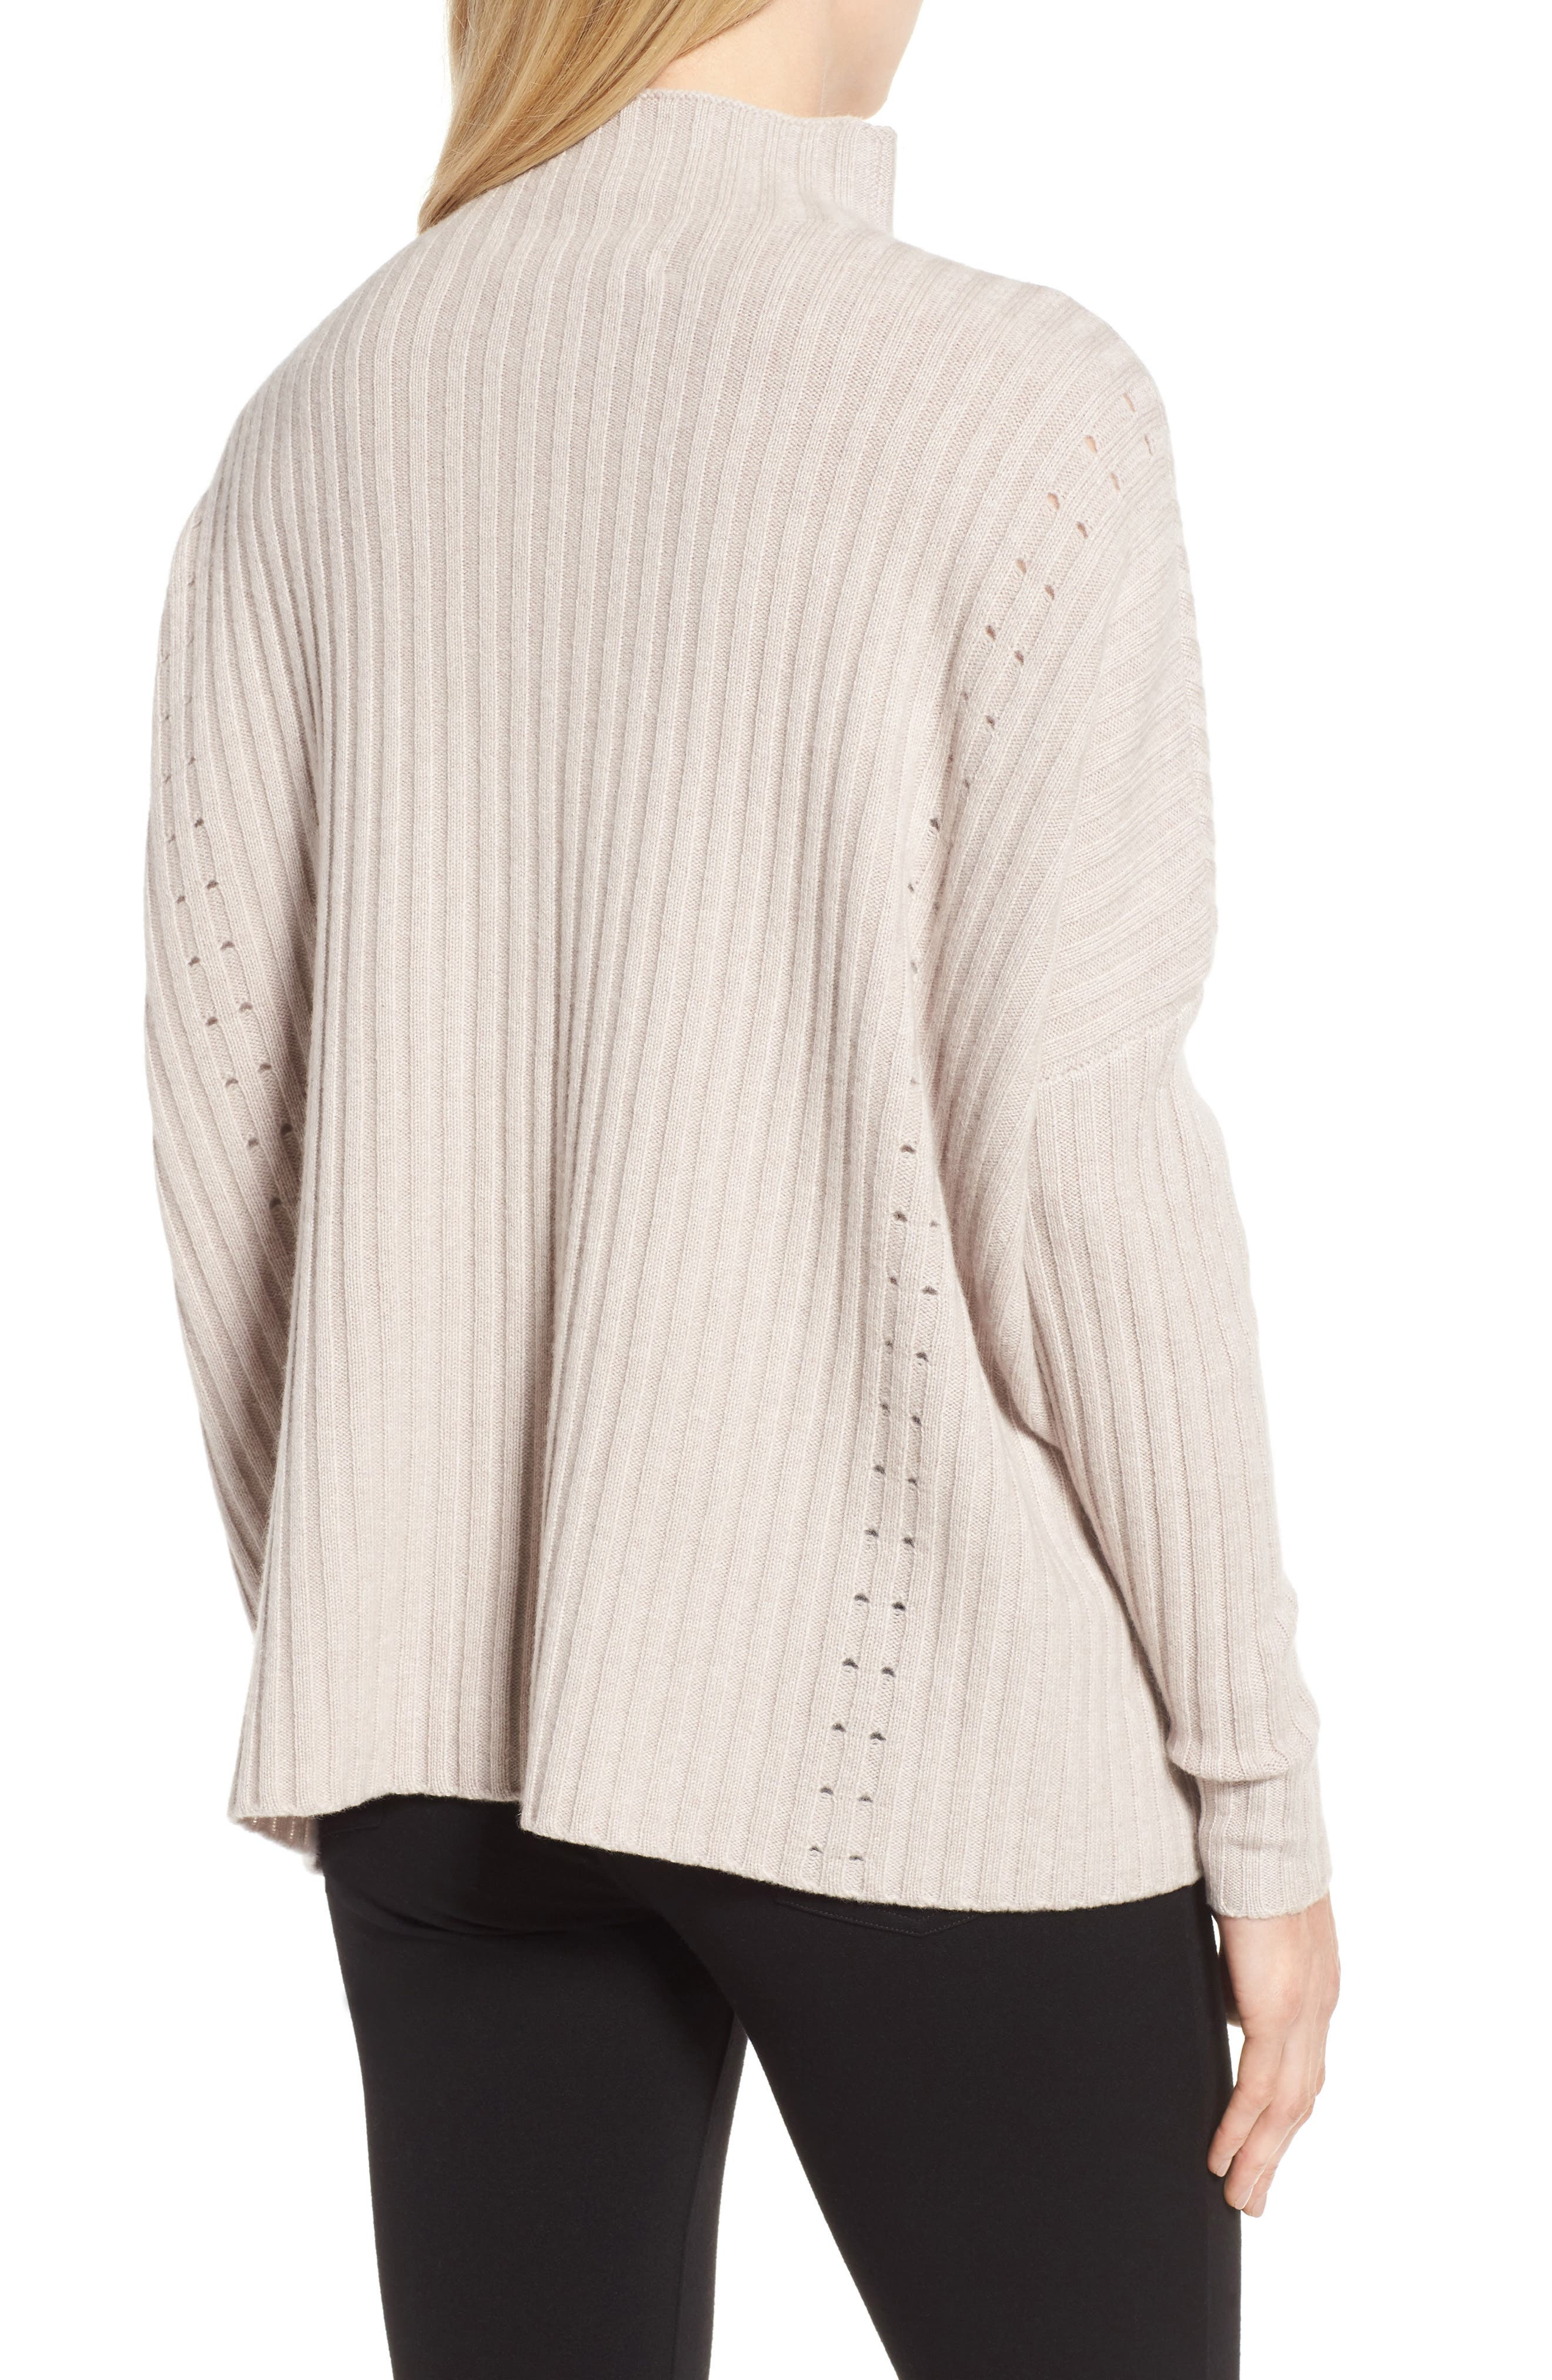 Boxy Ribbed Cashmere Sweater,                             Alternate thumbnail 2, color,                             Beige Pumice Heather